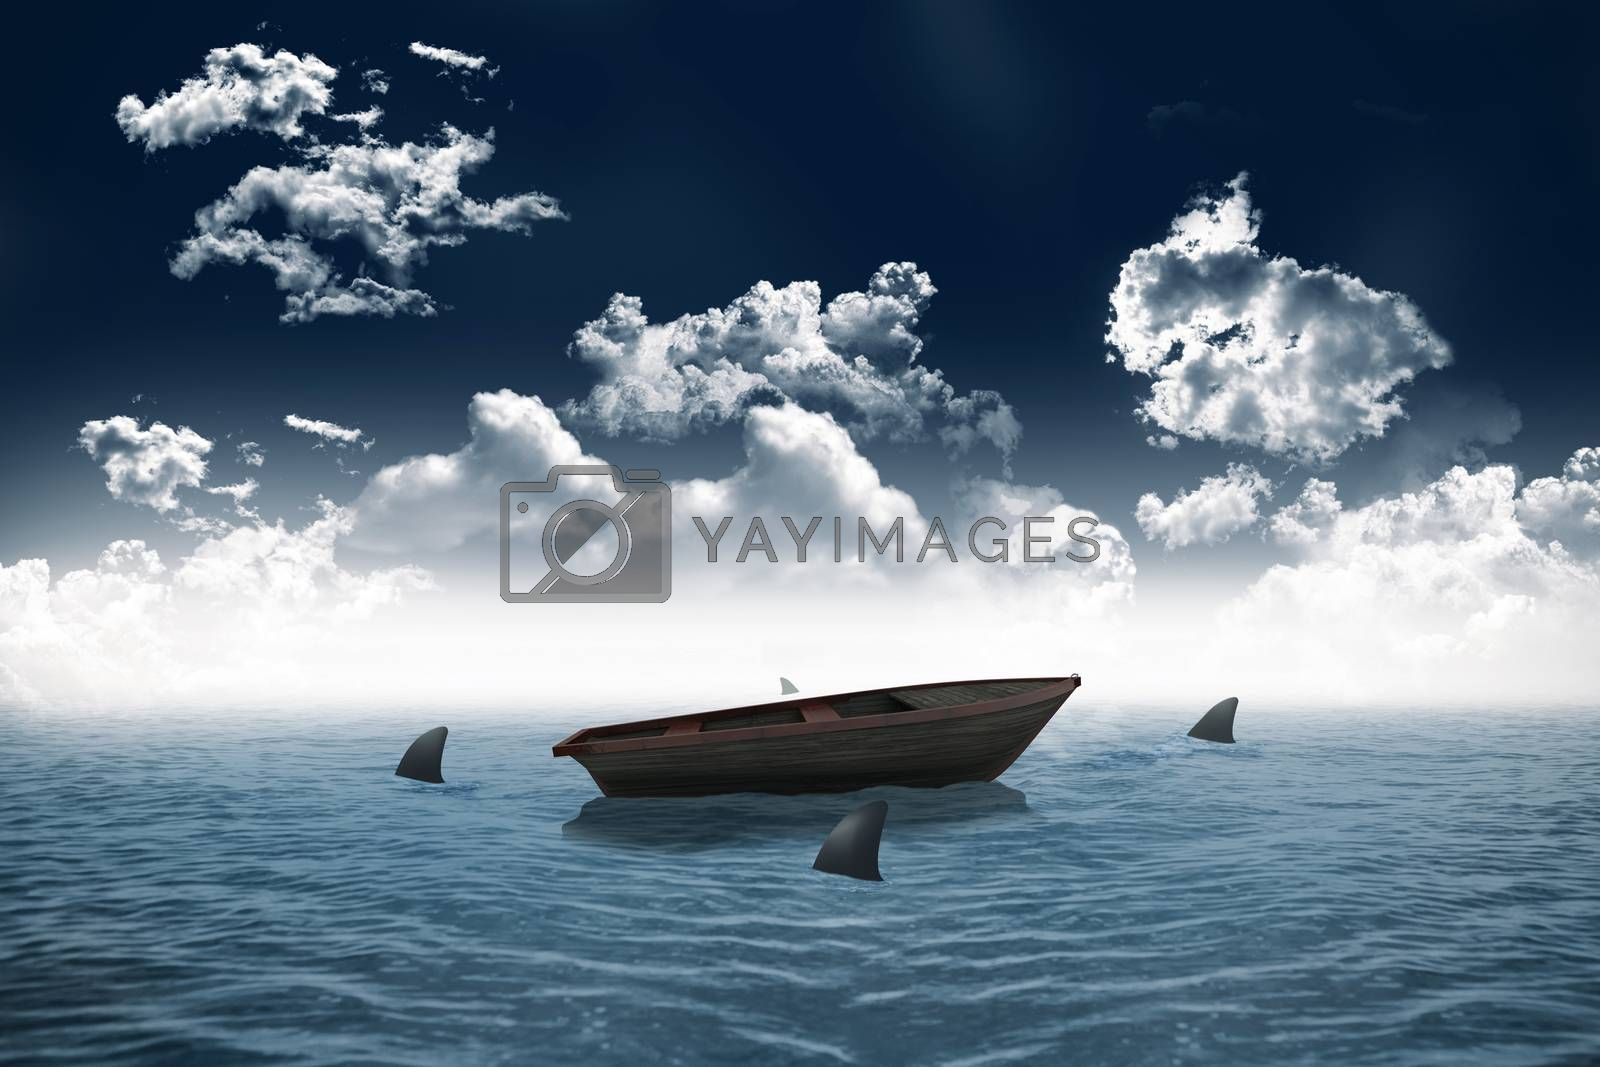 Royalty free image of Sharks circling small boat in the sea by Wavebreakmedia